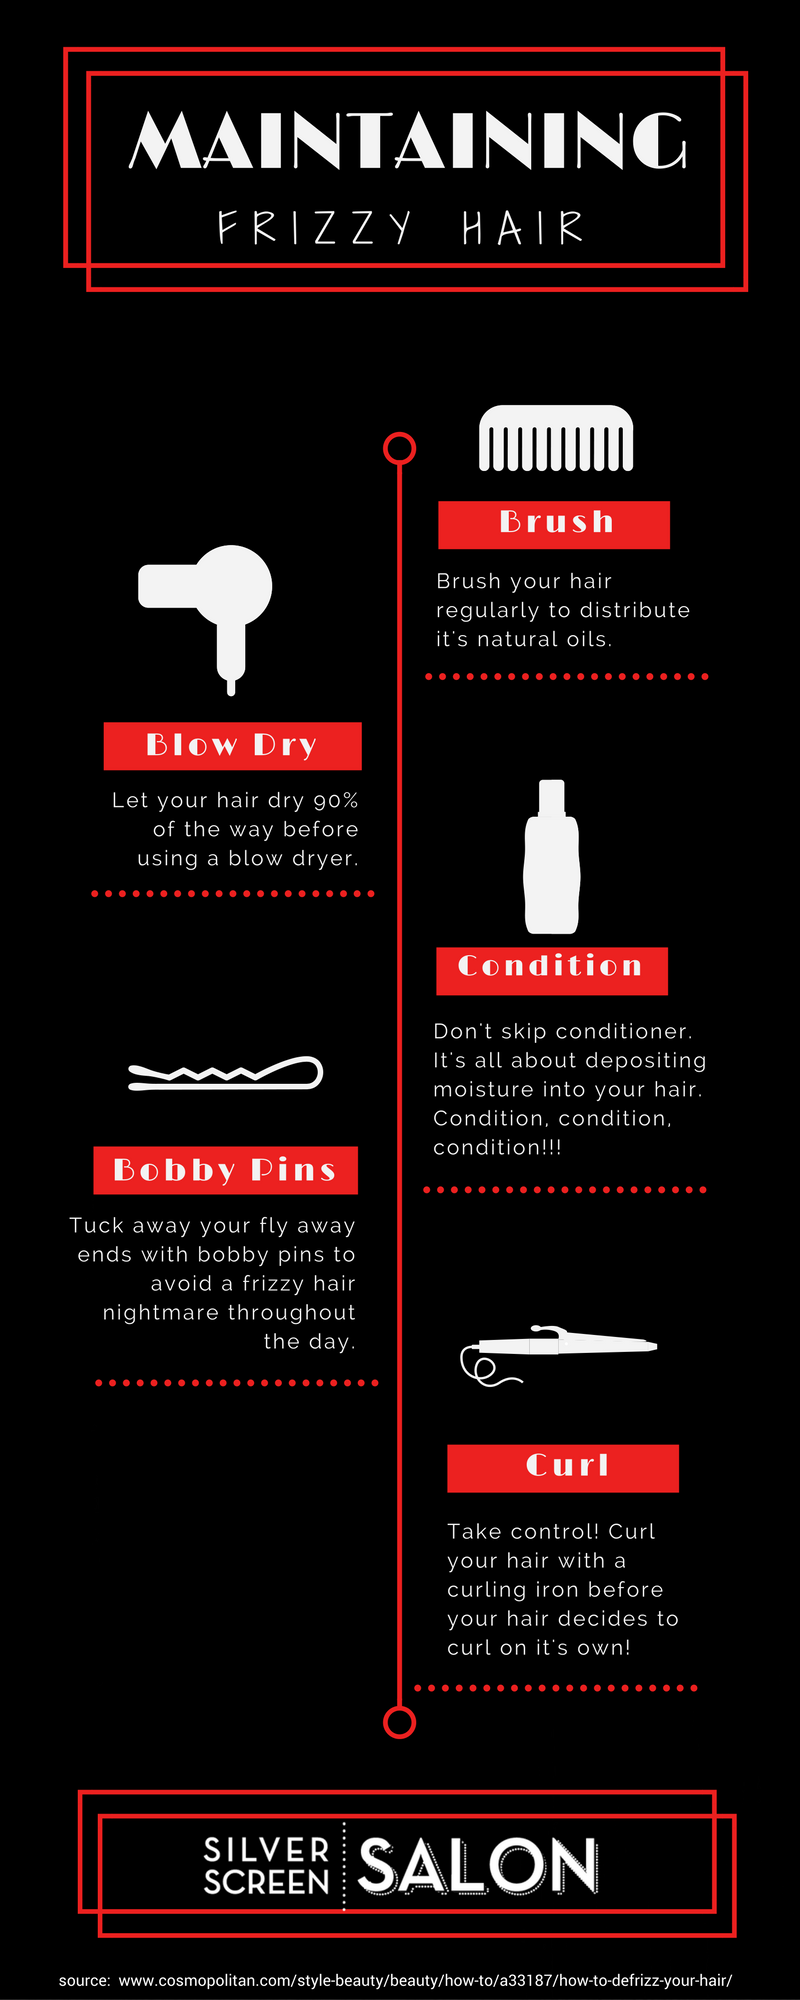 frizzy hair infographic (1)